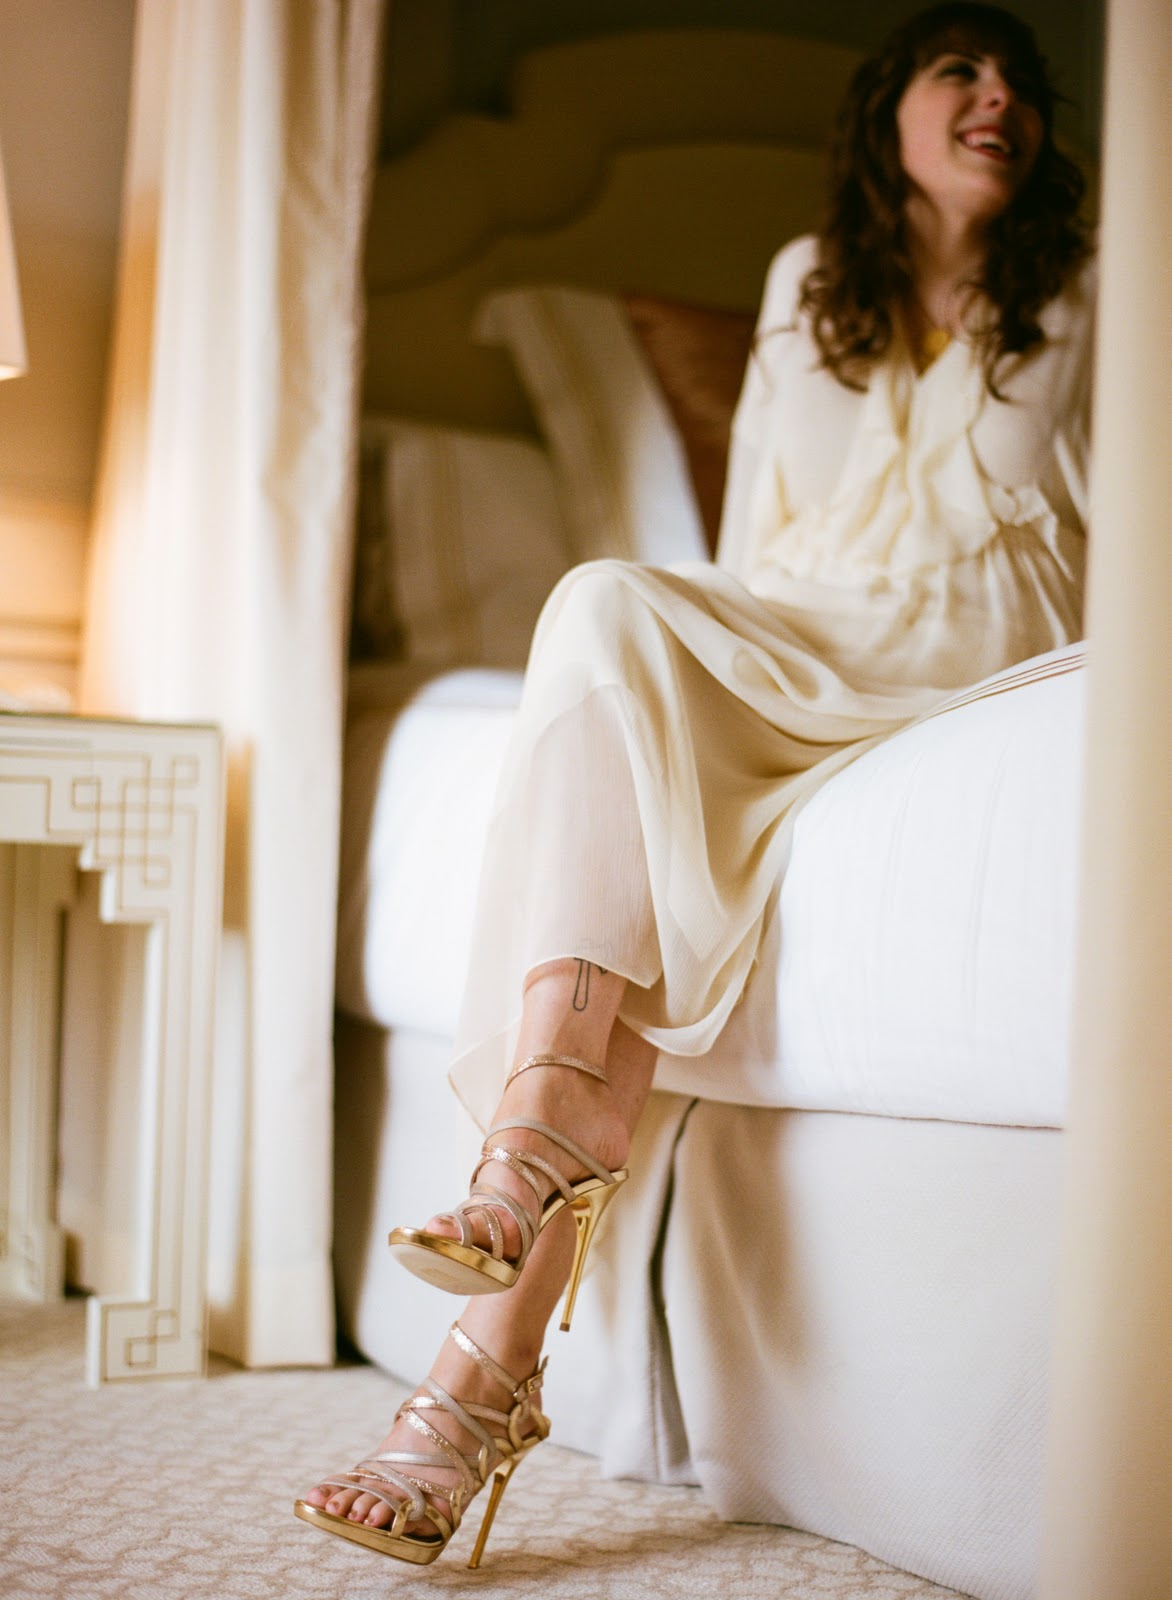 sylvie-gil-film-photography-wedding-bride-shoes-stilletos